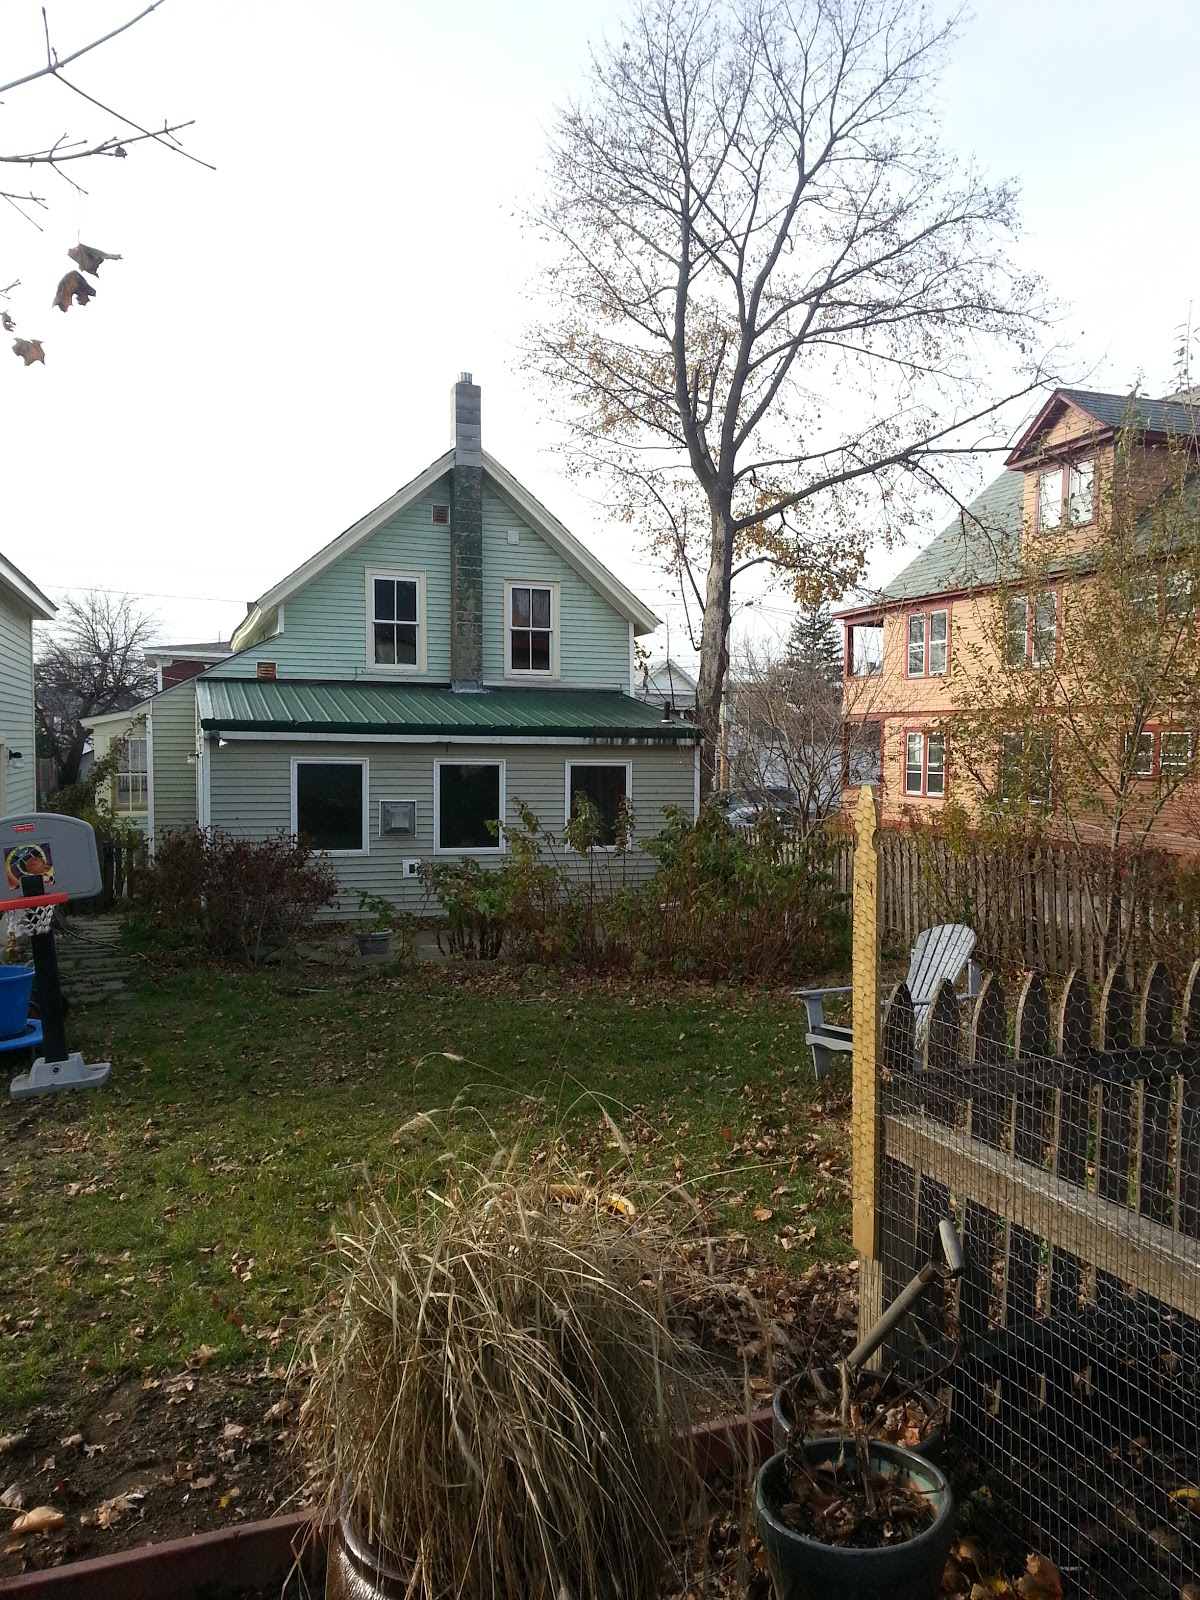 230 North Willard St.: The Backyard as Urban Farm Oasis - photo#19